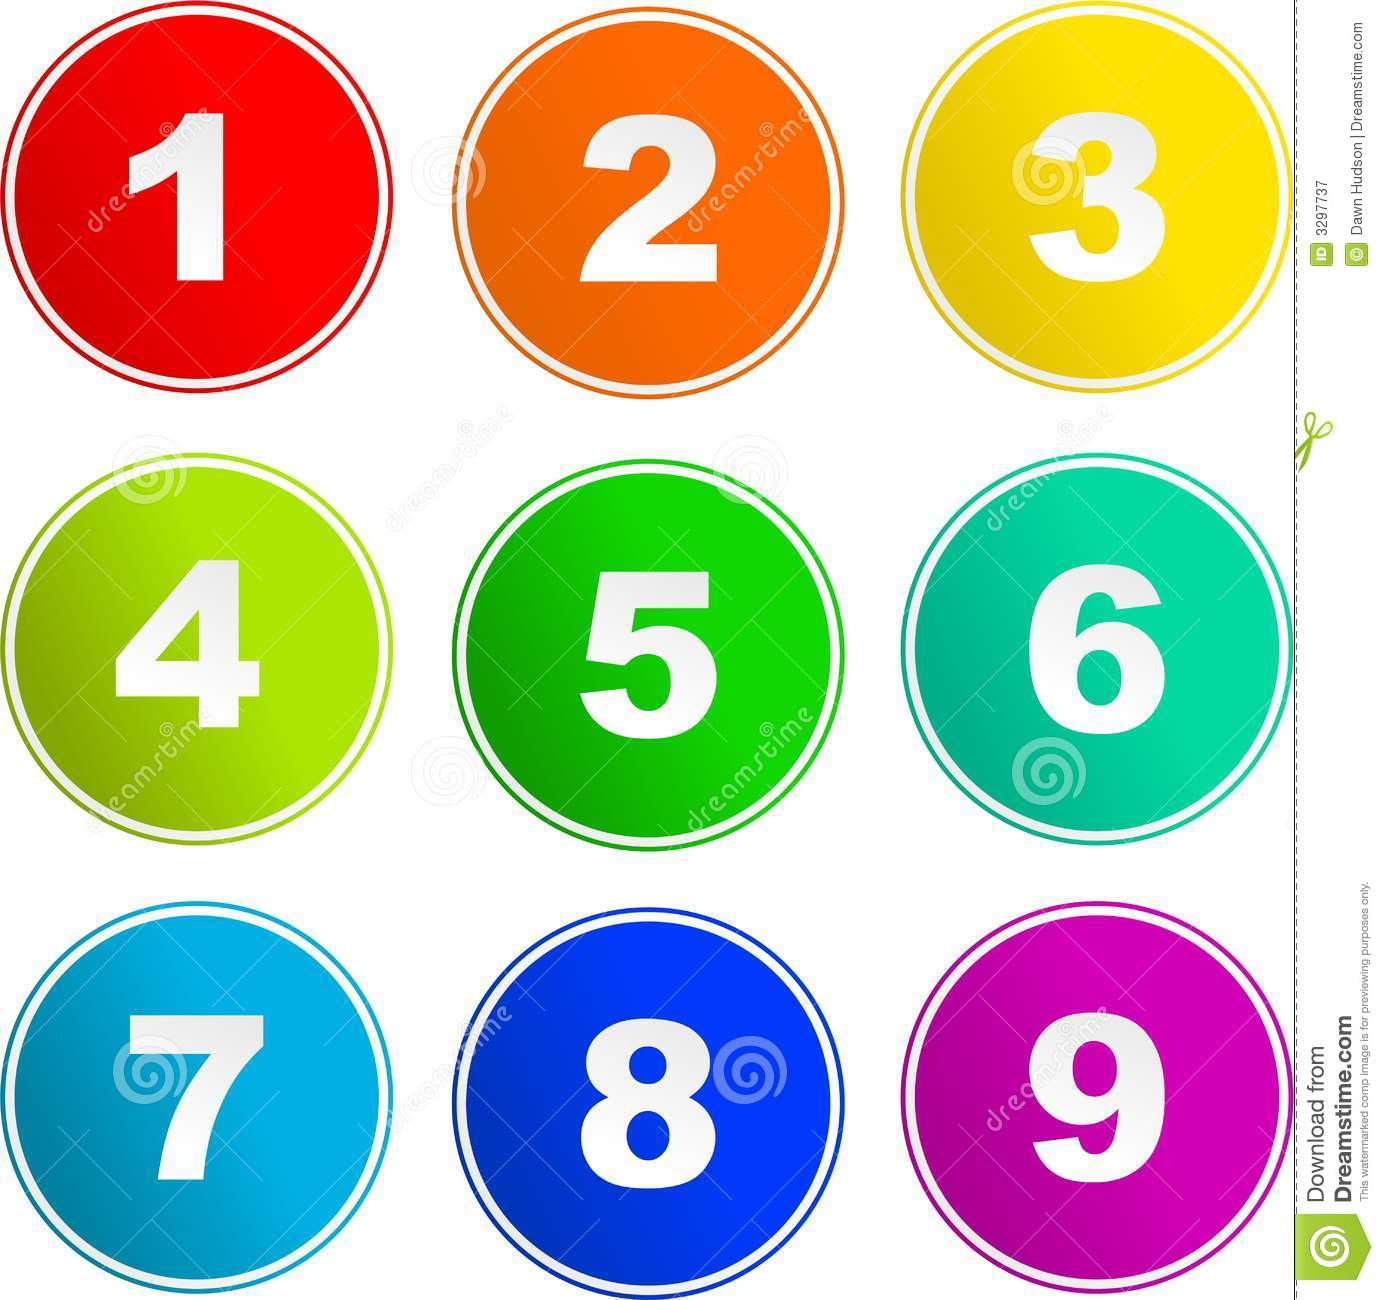 Number Sign Icons Stock Vector. Illustration Of Decoration